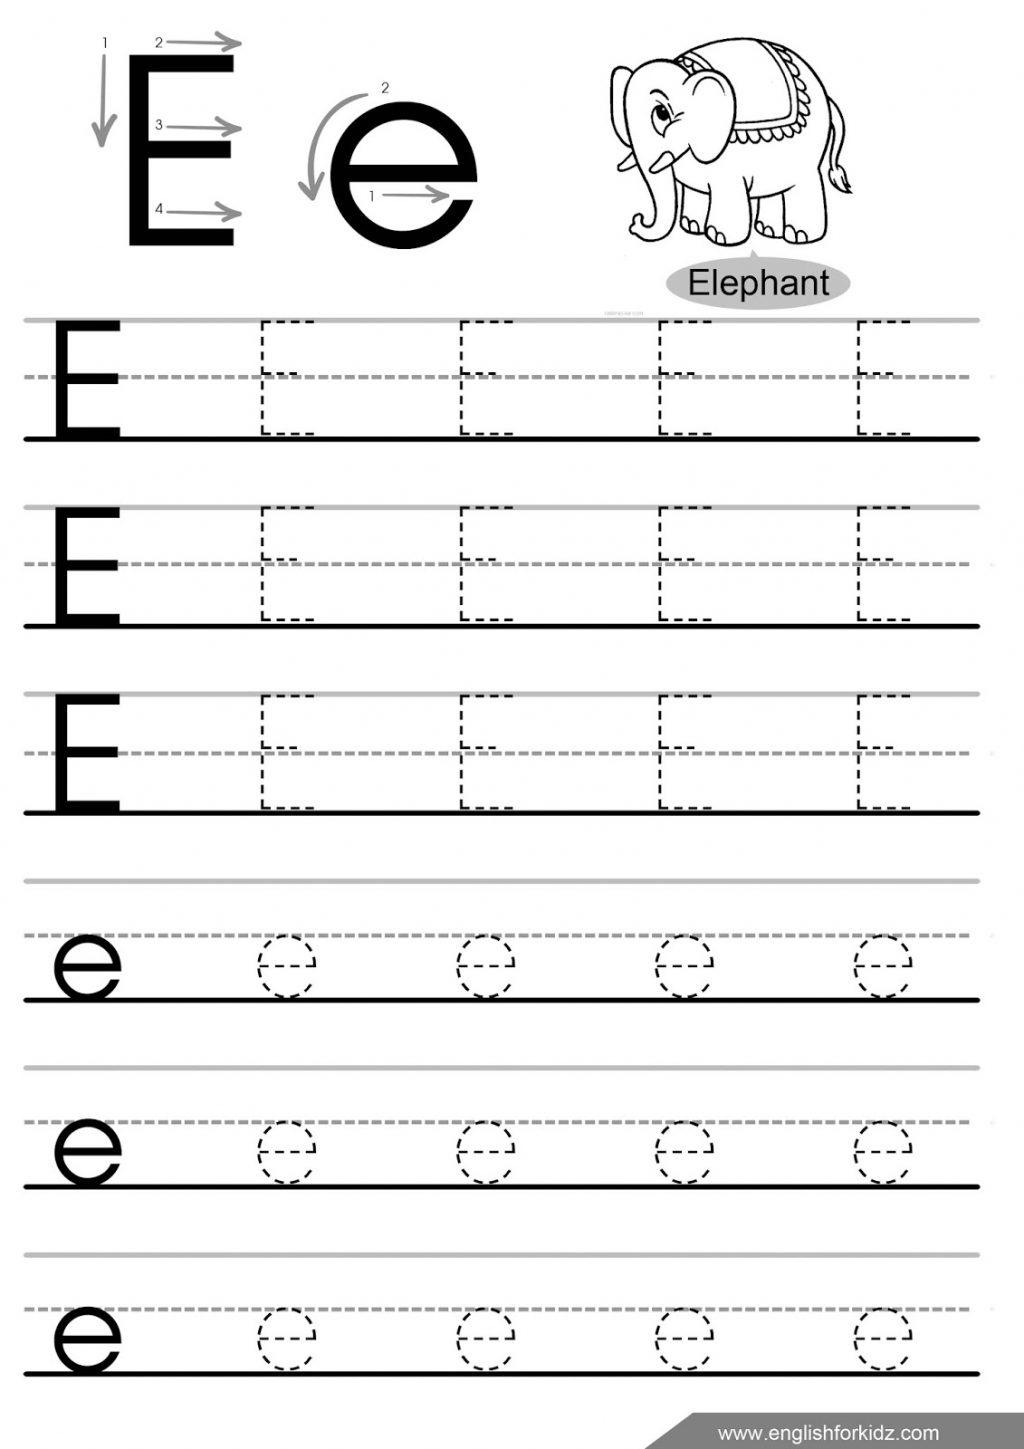 Best Of Preschool Letter E Worksheet | Educational Worksheet pertaining to E Letter Worksheets Kindergarten